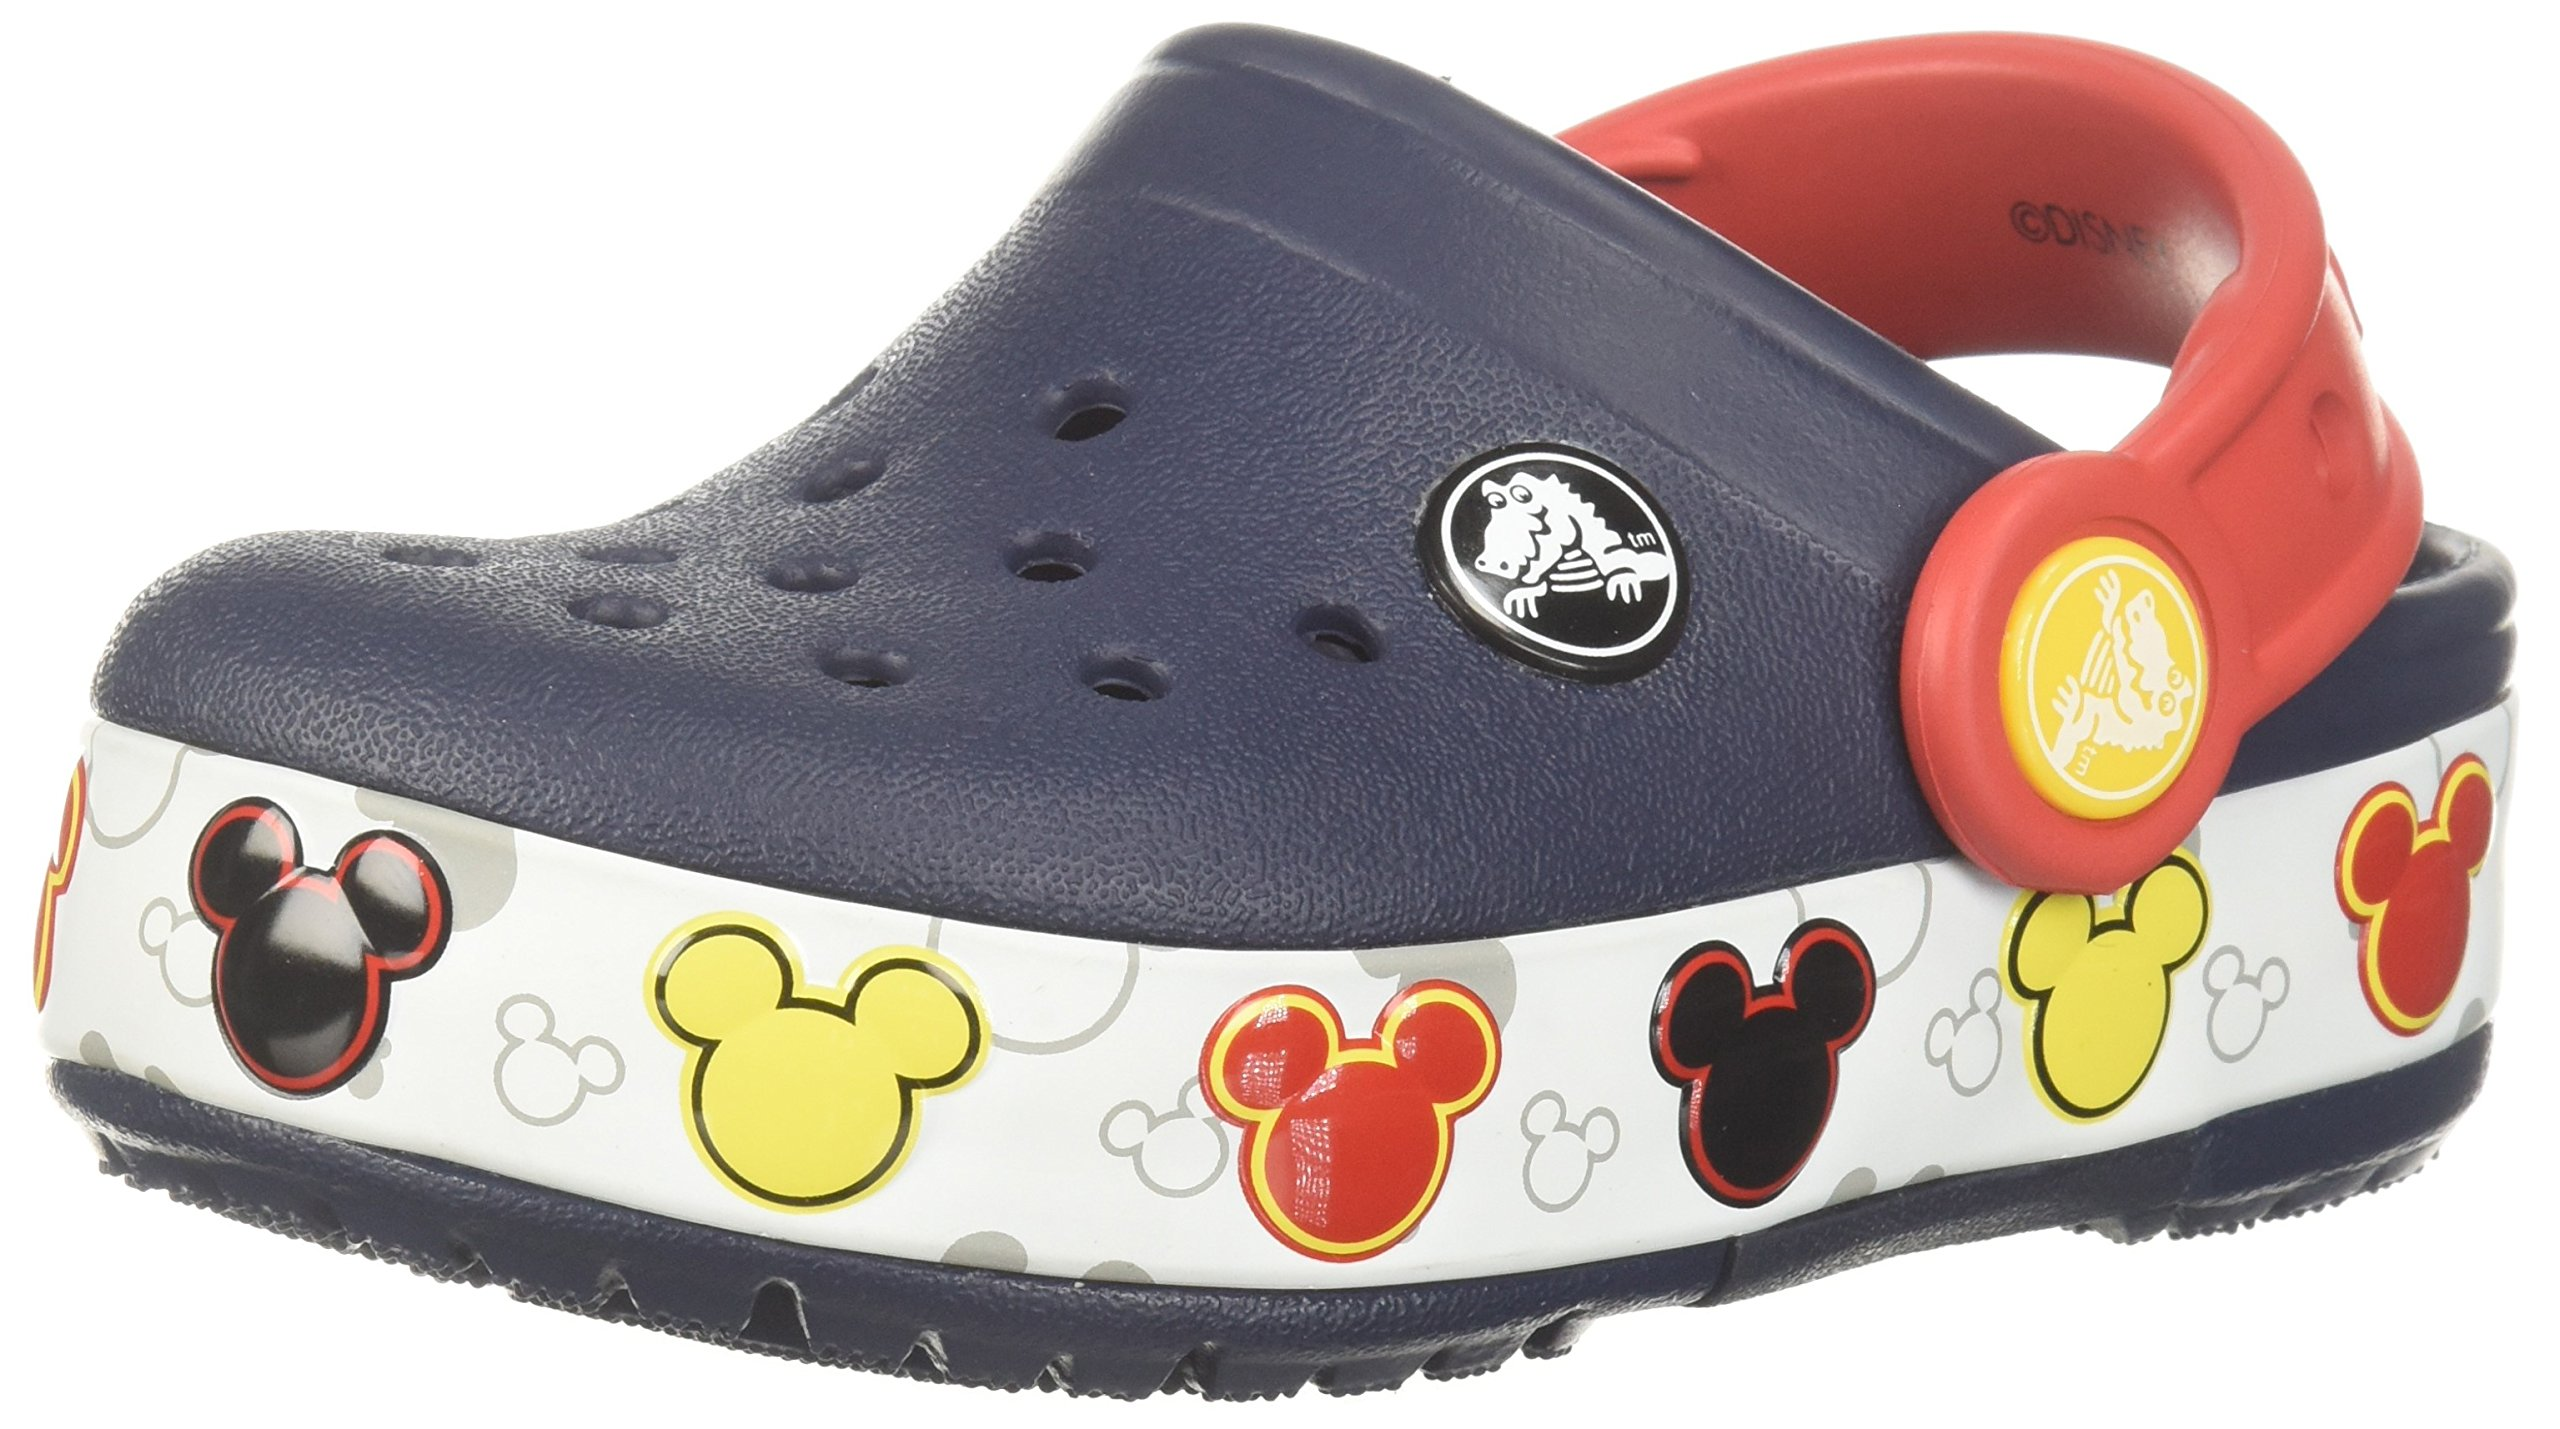 Crocs Kids' Crocband Fun Lab Mickey Light-up Clog, Navy, 11 M US Little Kid